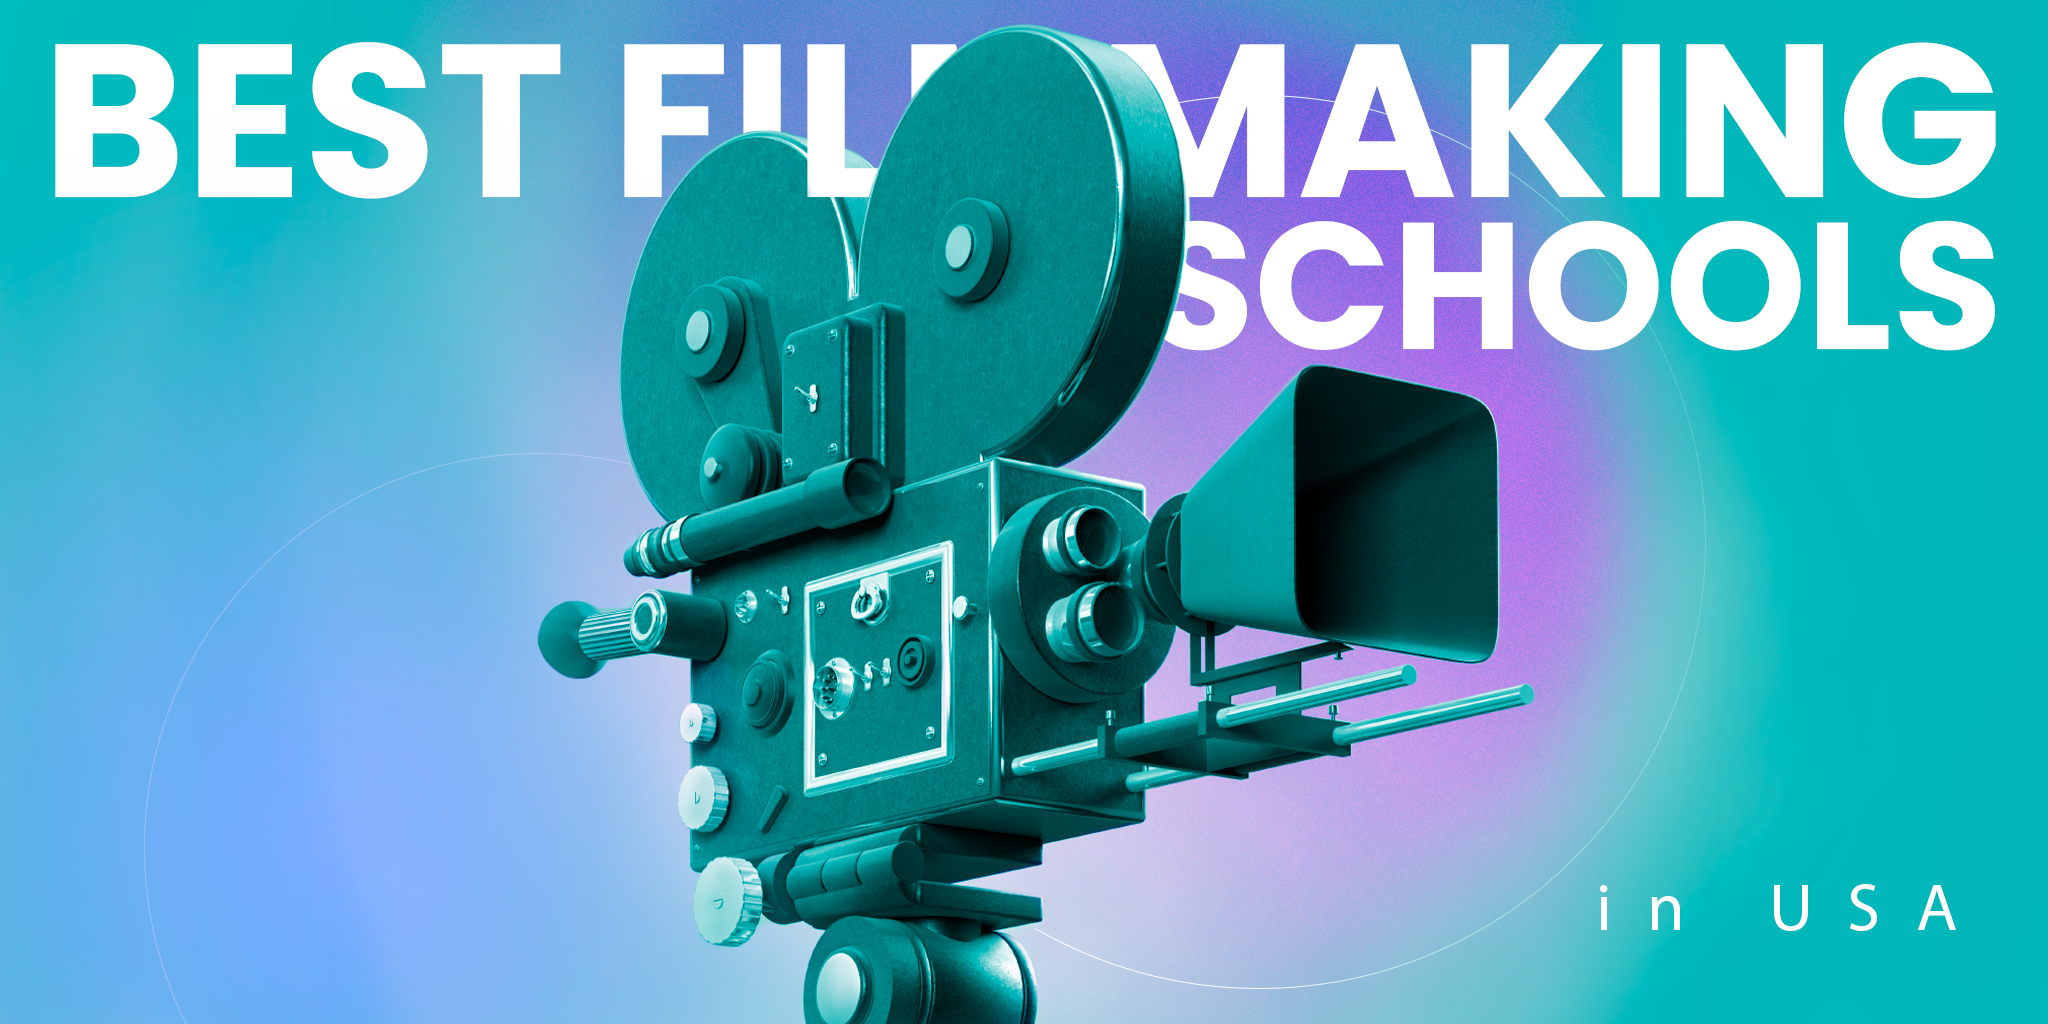 Best filmmaking schools